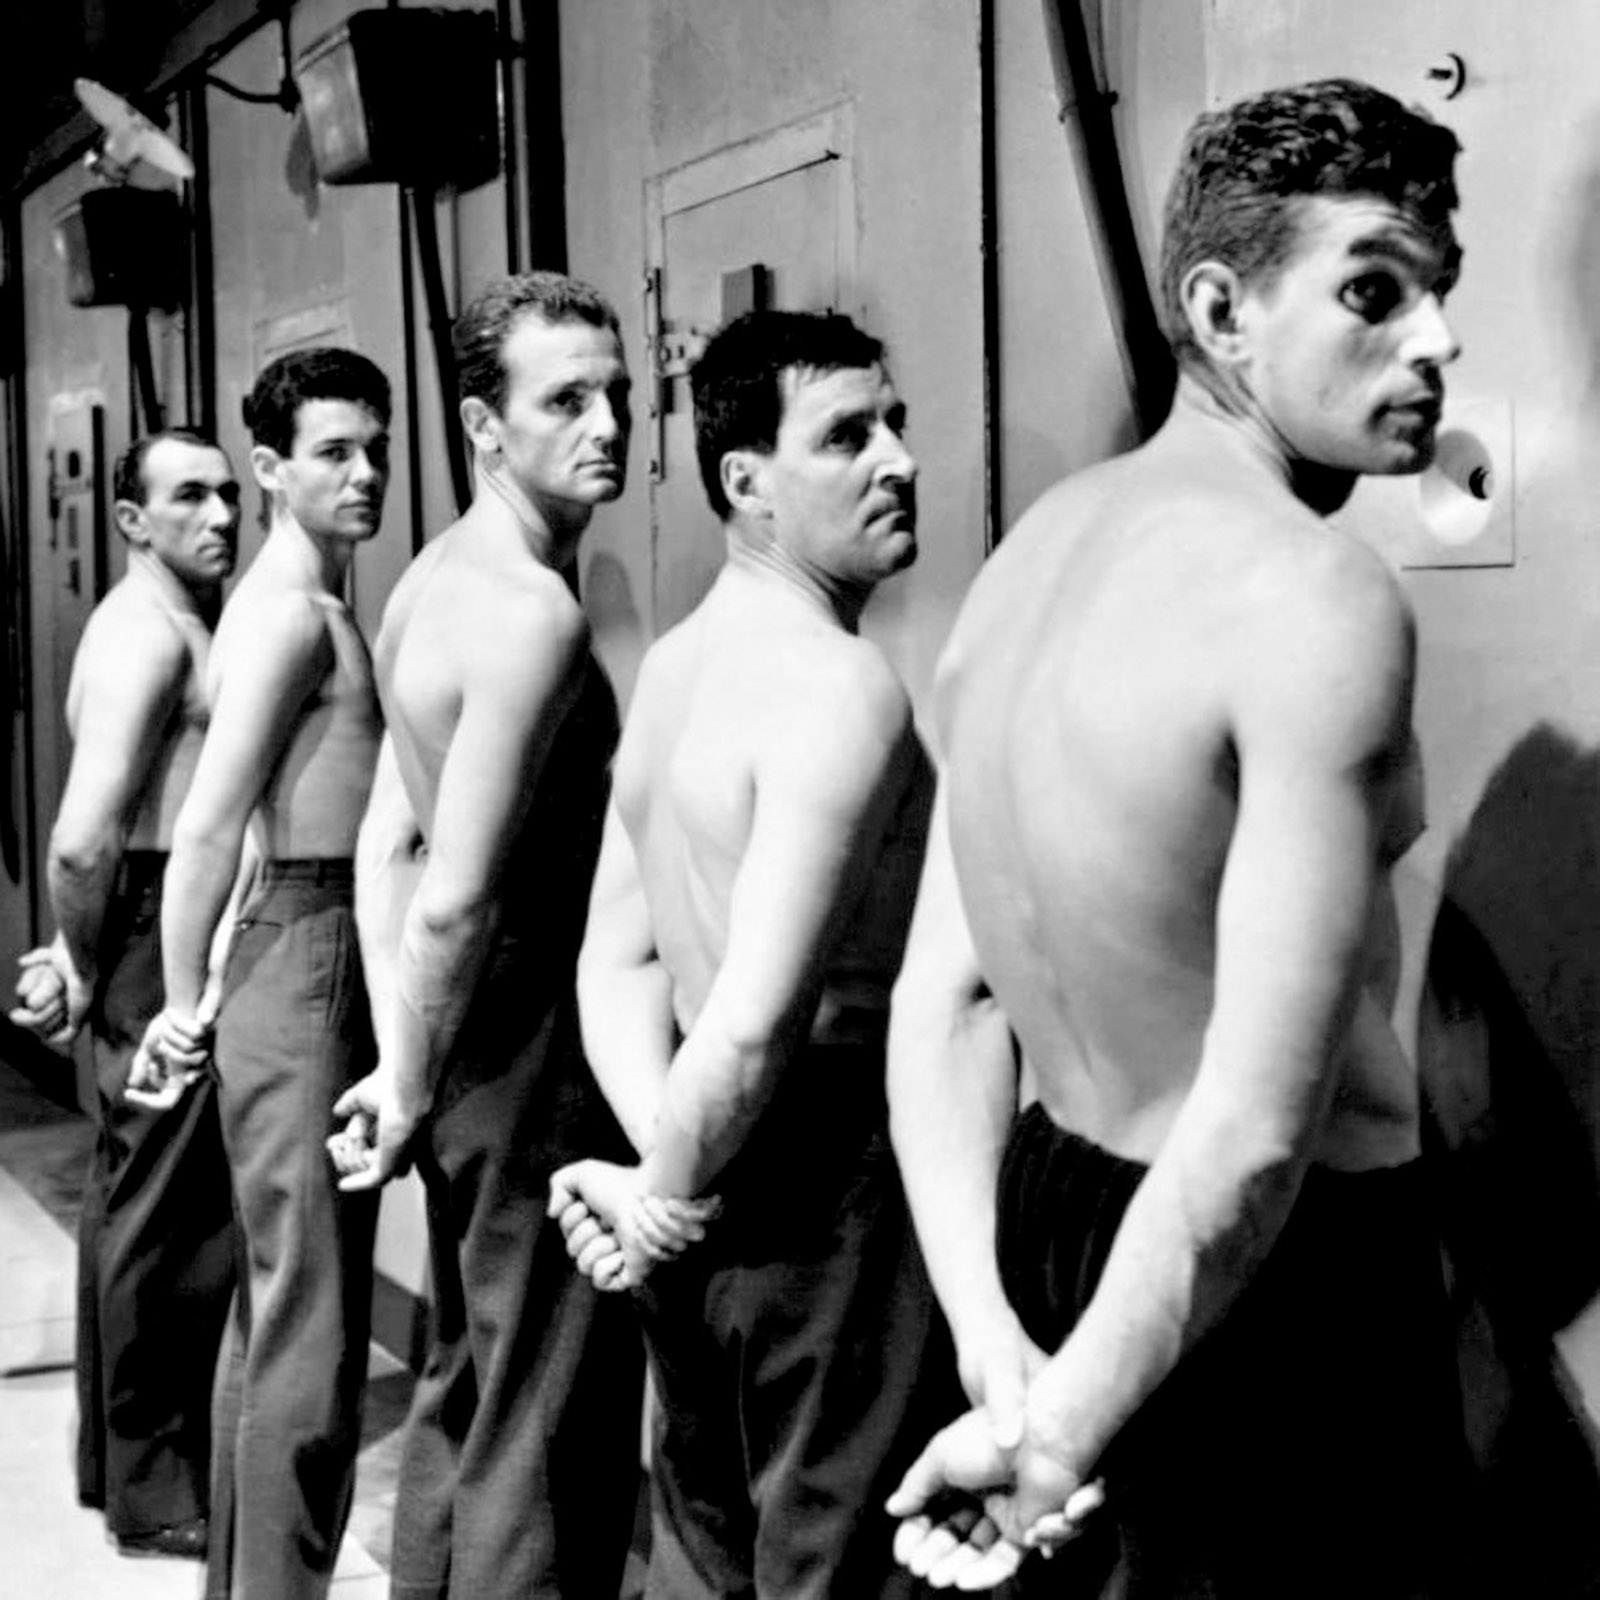 Jean Keraudy, Marc Michel, Philippe Leroy, Raymond Meunier, and Michel Constantin in Jacques Becker's Le Trou, 1960